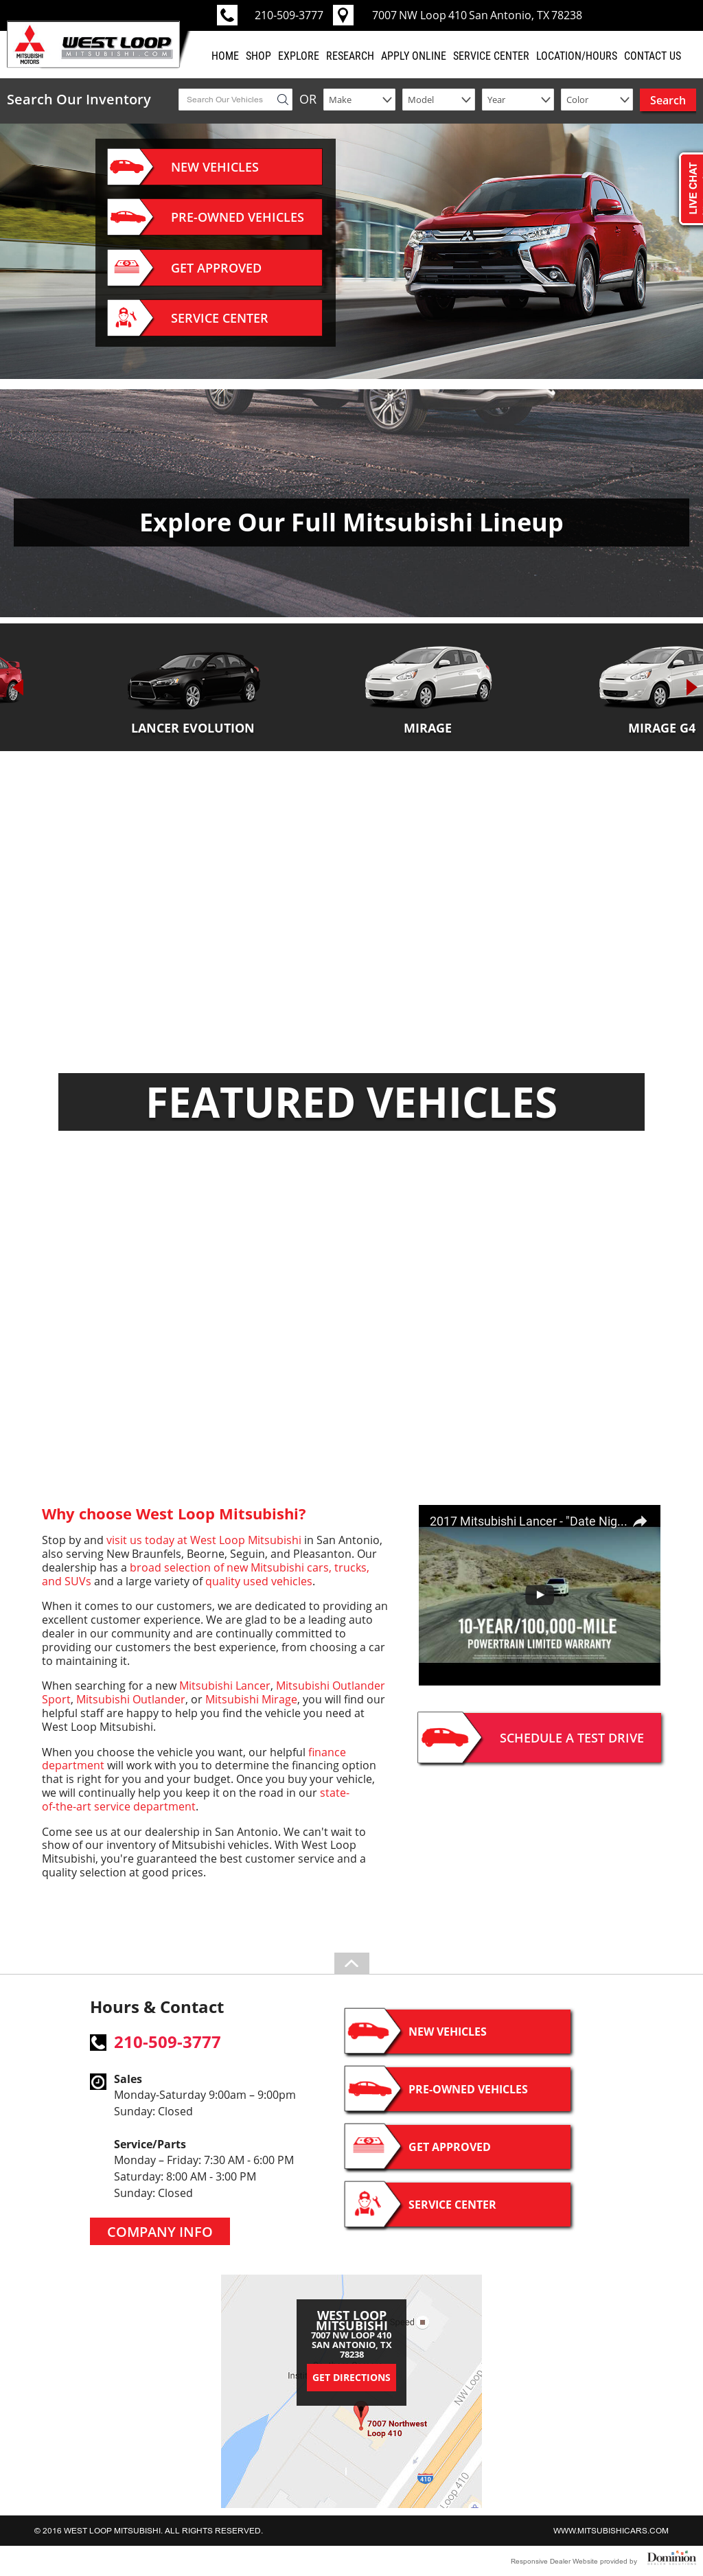 West Loop Mitsubishi San Antonio Tx >> West Loop Imports Competitors Revenue And Employees Owler